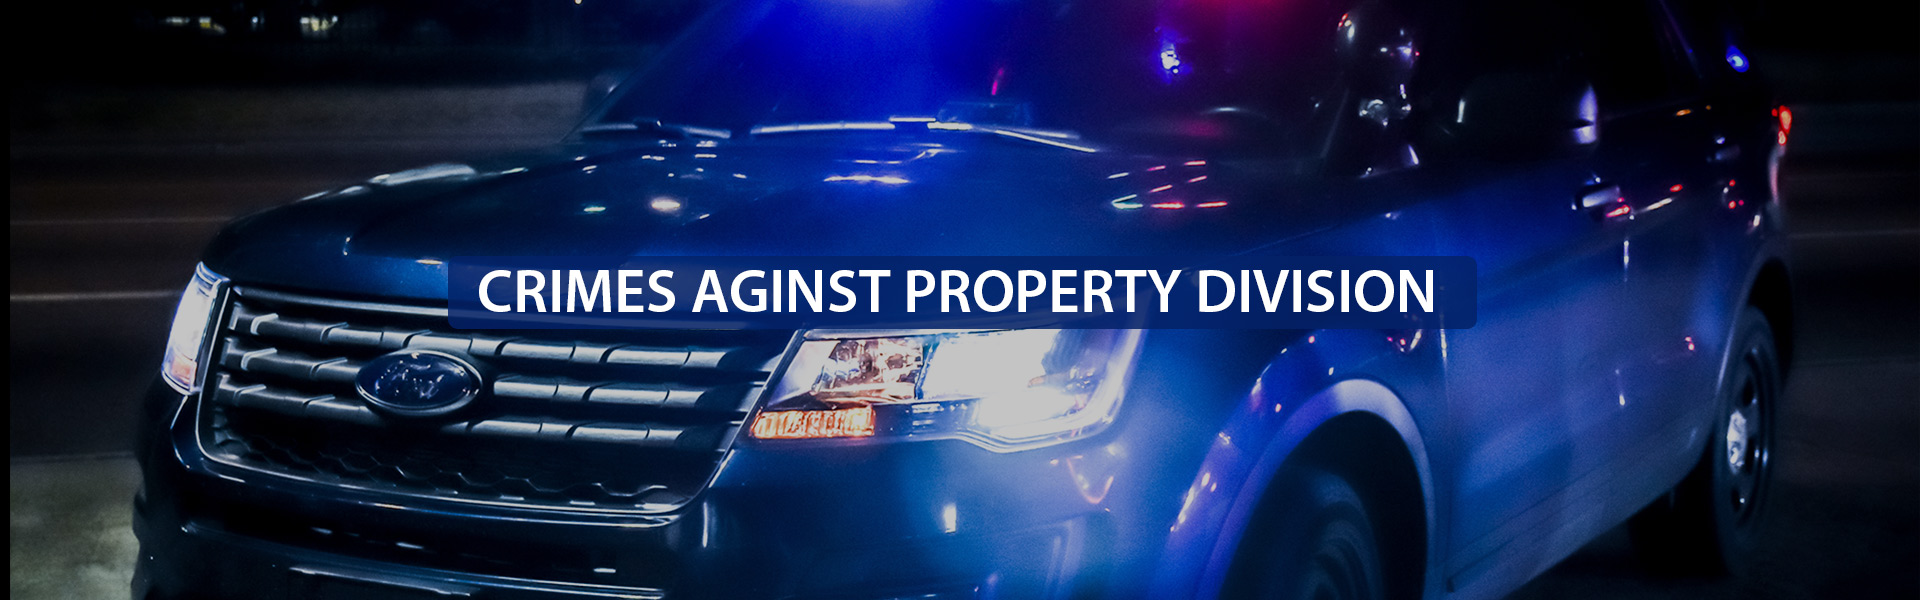 Crime Against Property Division